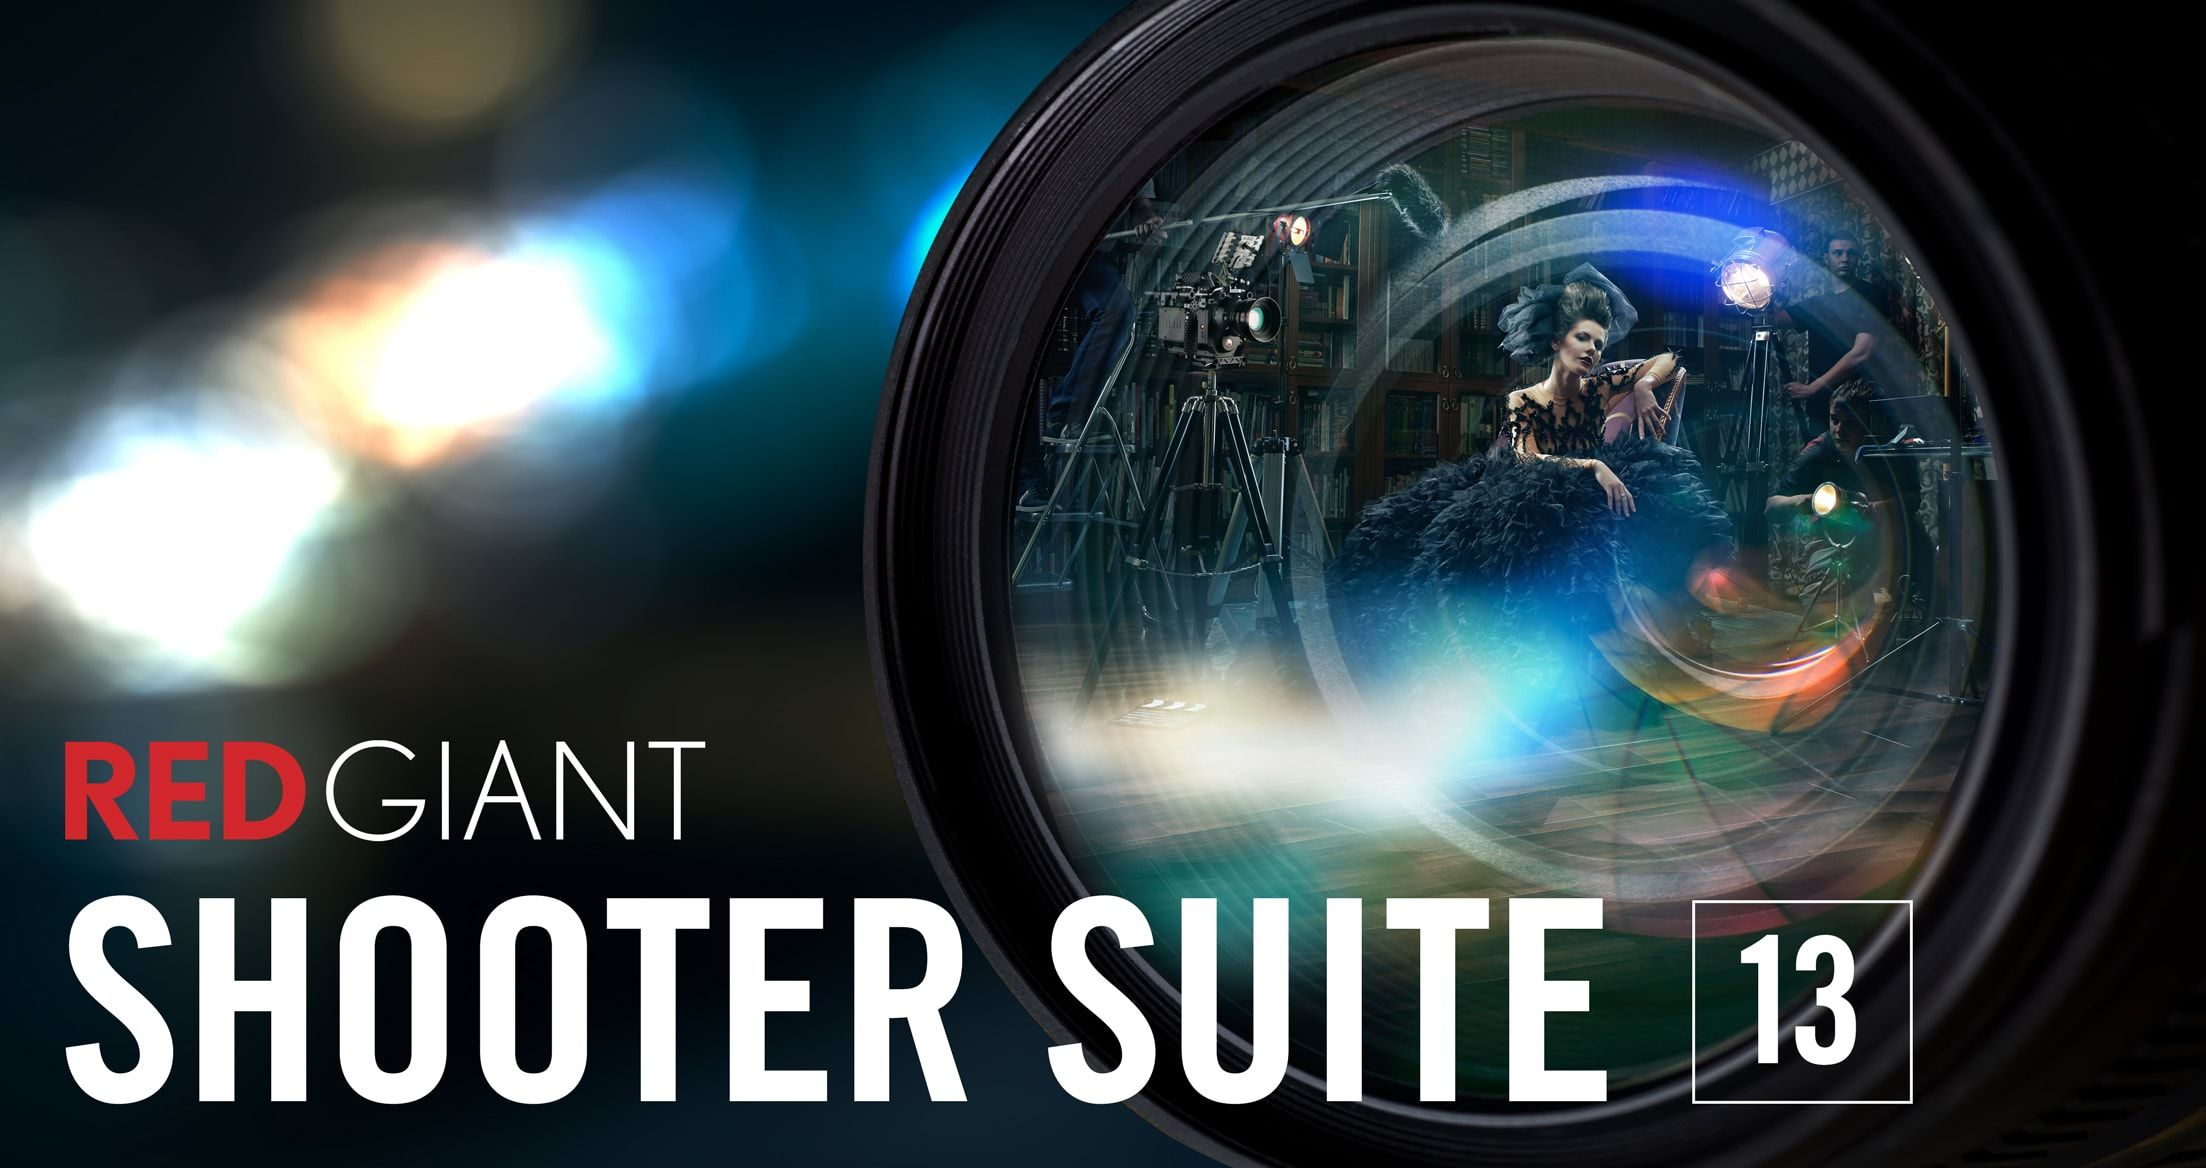 Download Gratis Red Giant Shooter Suite 13 Full Version